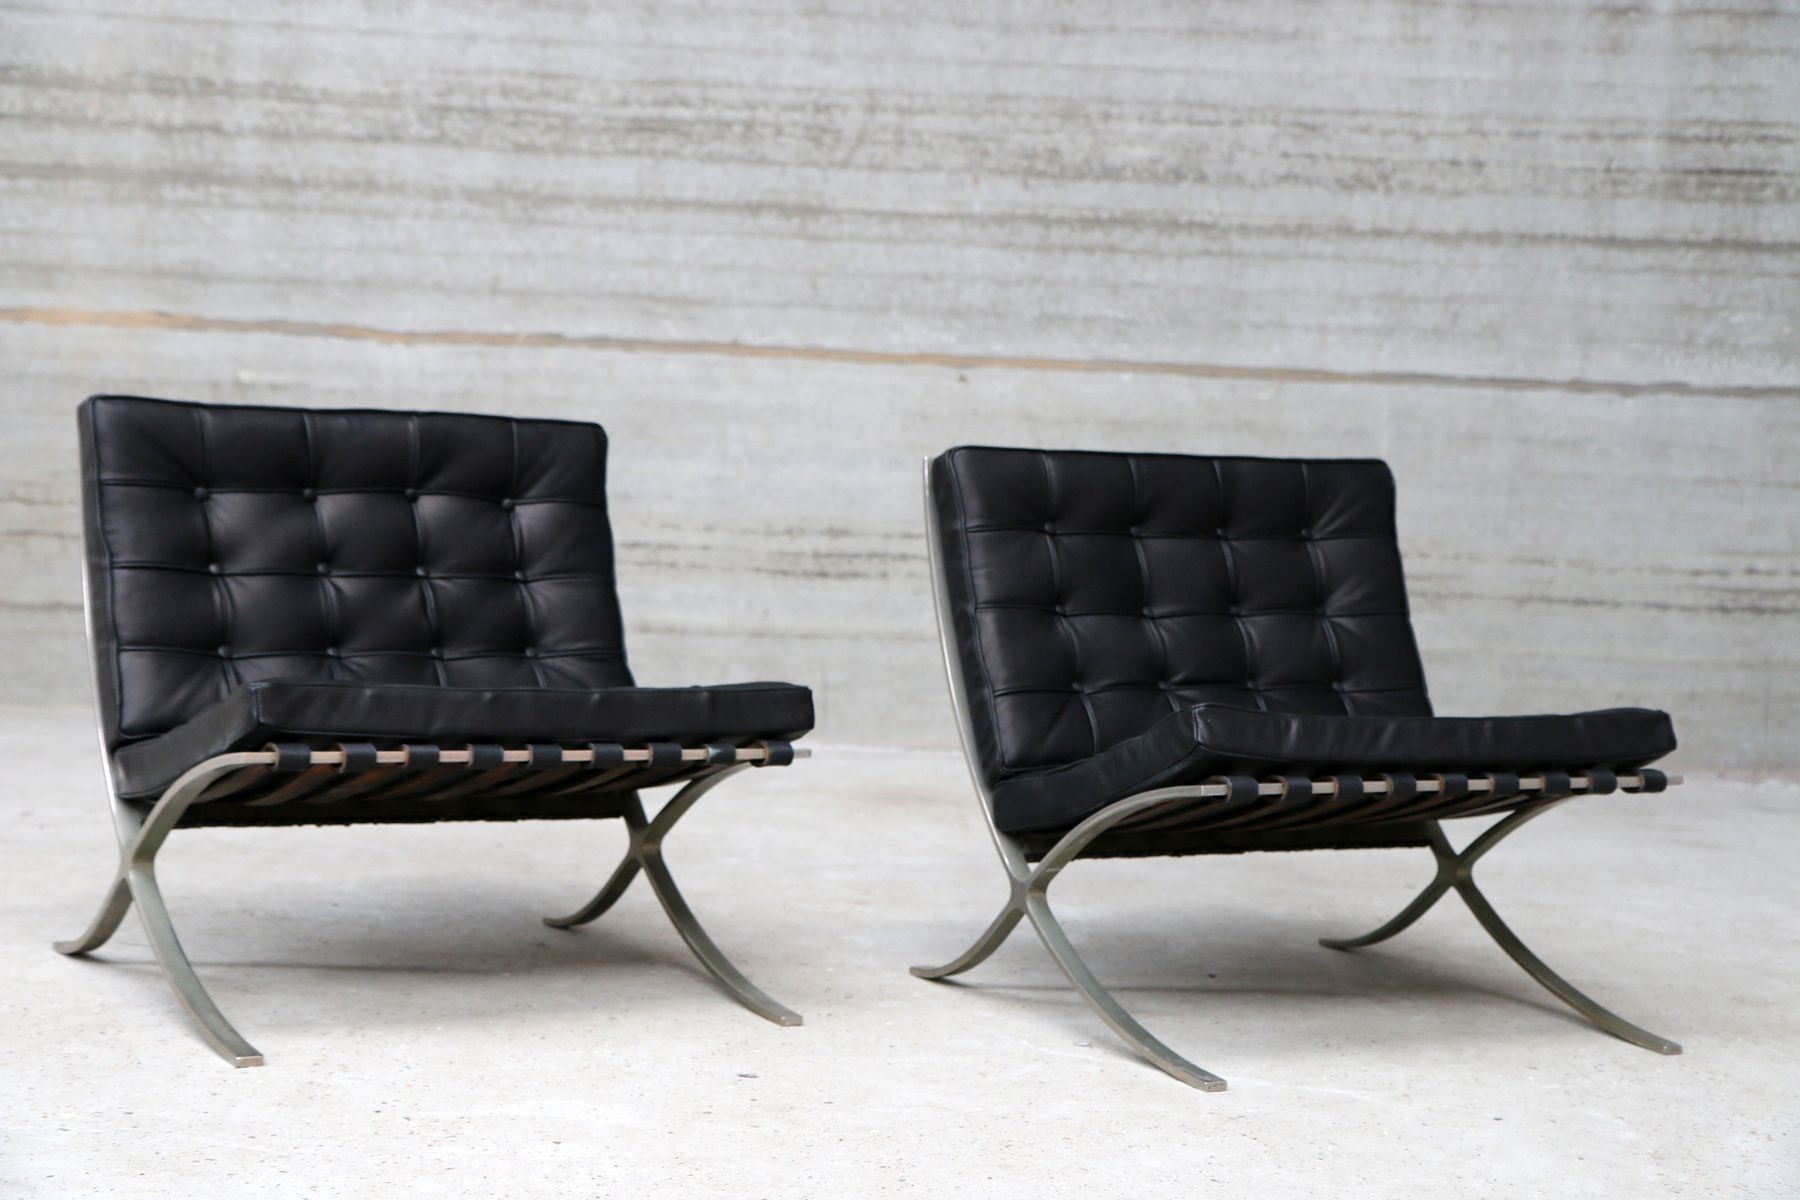 mies van der rohe barcelona chair gaming x rocker vintage chairs by ludwig for knoll, set of 2 sale at pamono